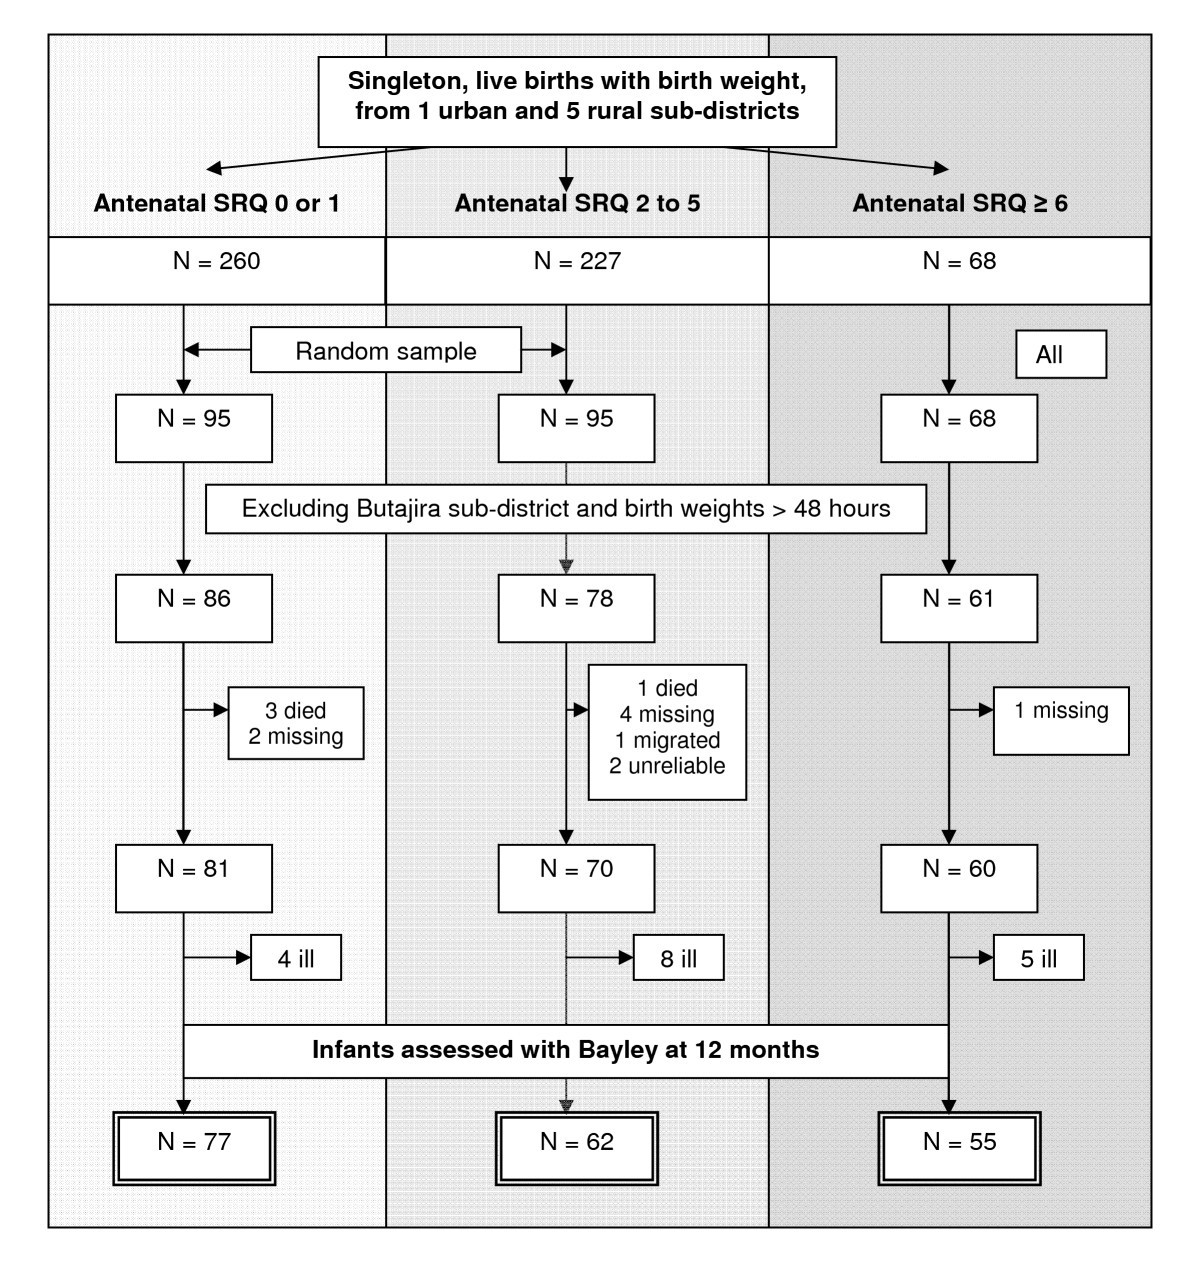 Maternal Common Mental Disorders And Infant Development In Ethiopia 2010 Town Country 3 8 Engine Diagram Figure 1